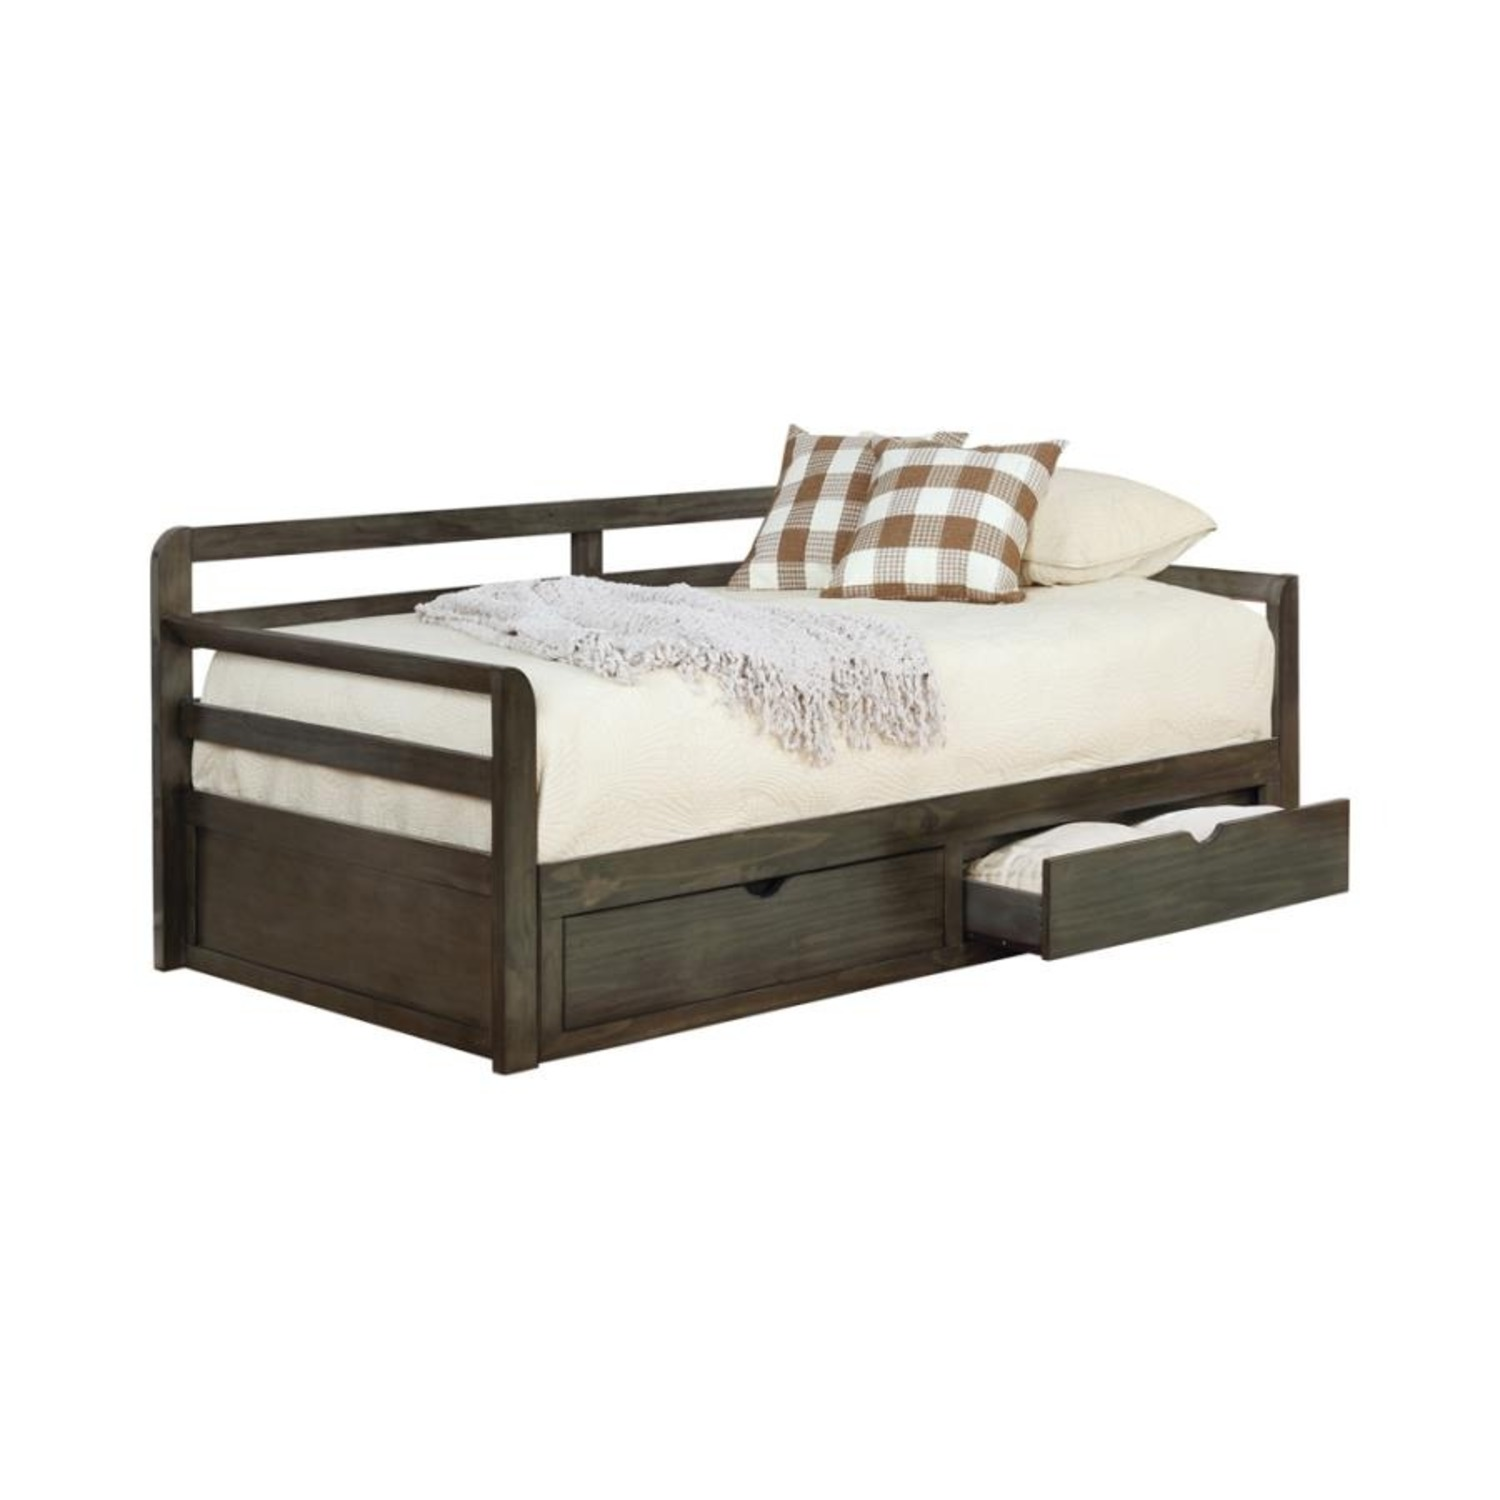 Daybed In Grey Wood Finish W/ Trundle - image-0